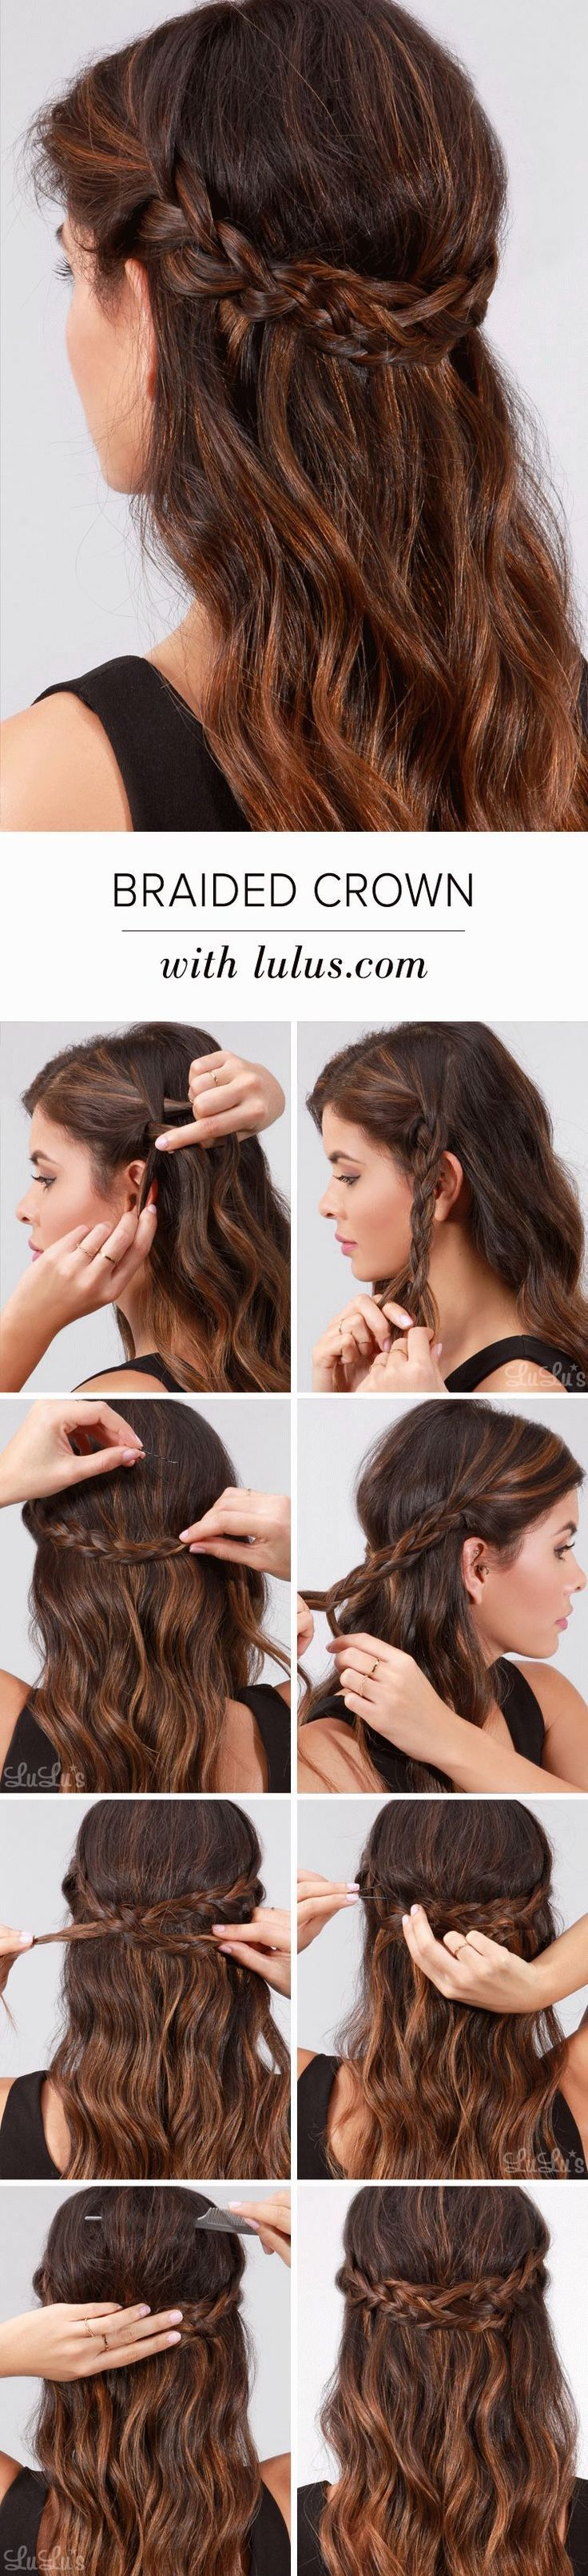 Braided Crown Hair Tutorial | Beauty Tips Magazine - Tap the Link Now to Shop Hair Products, Beauty Products and Kitchen Gadgets Online at Great Savings and Free Shipping!! https://getit-4me.com/